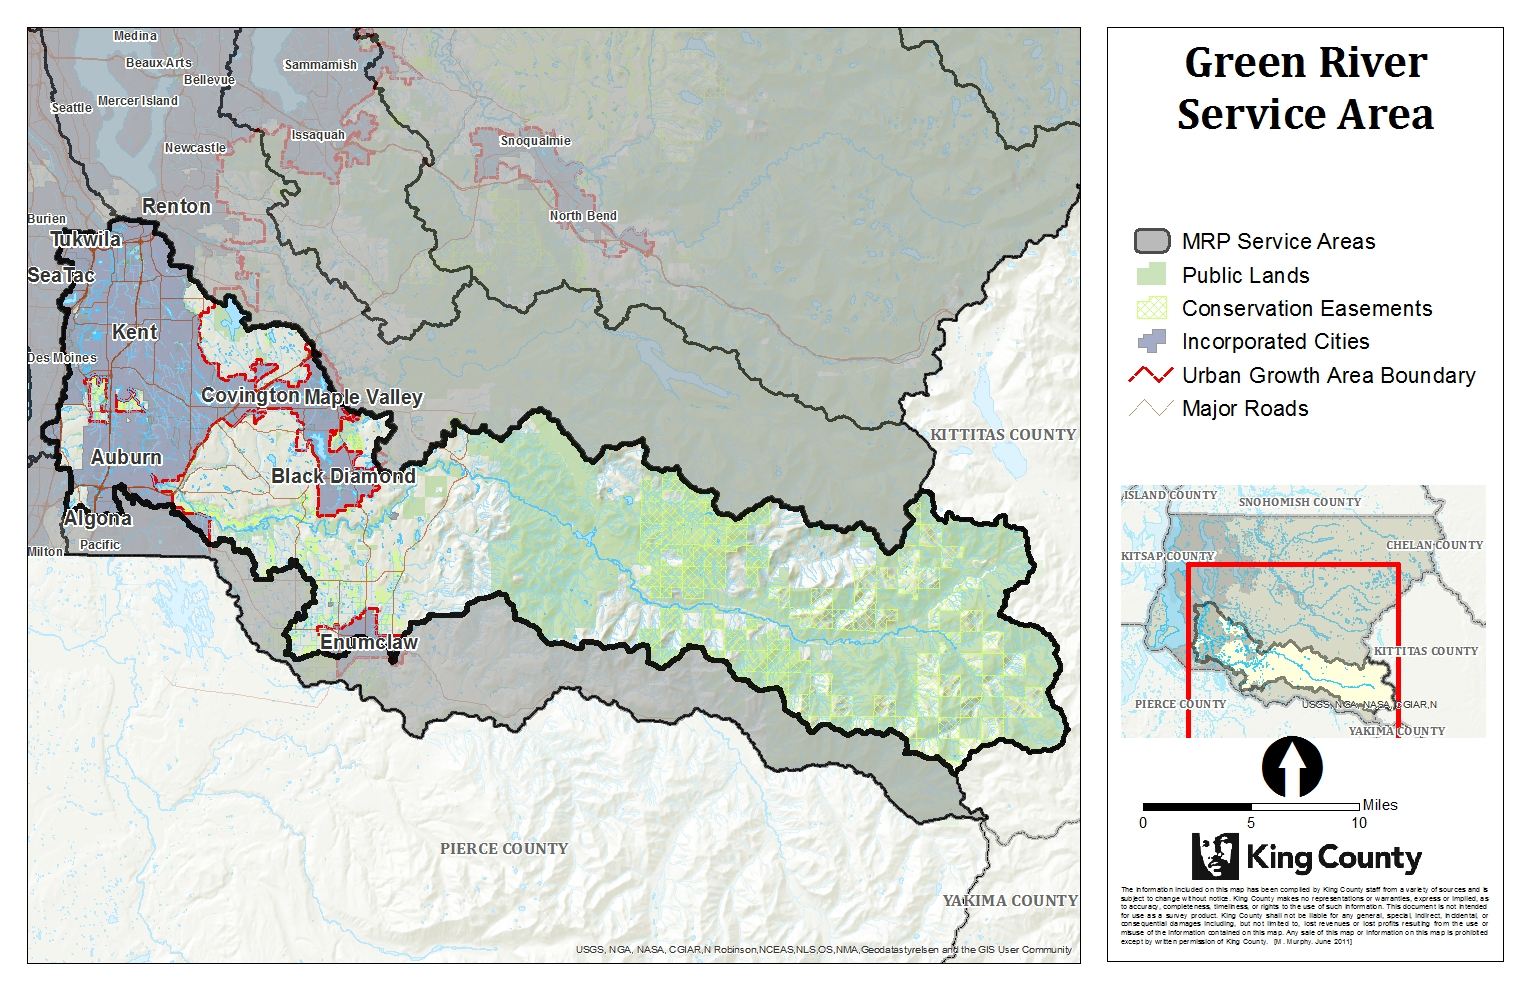 Map of Green River Service Area for King County Mitigation Reserves Program